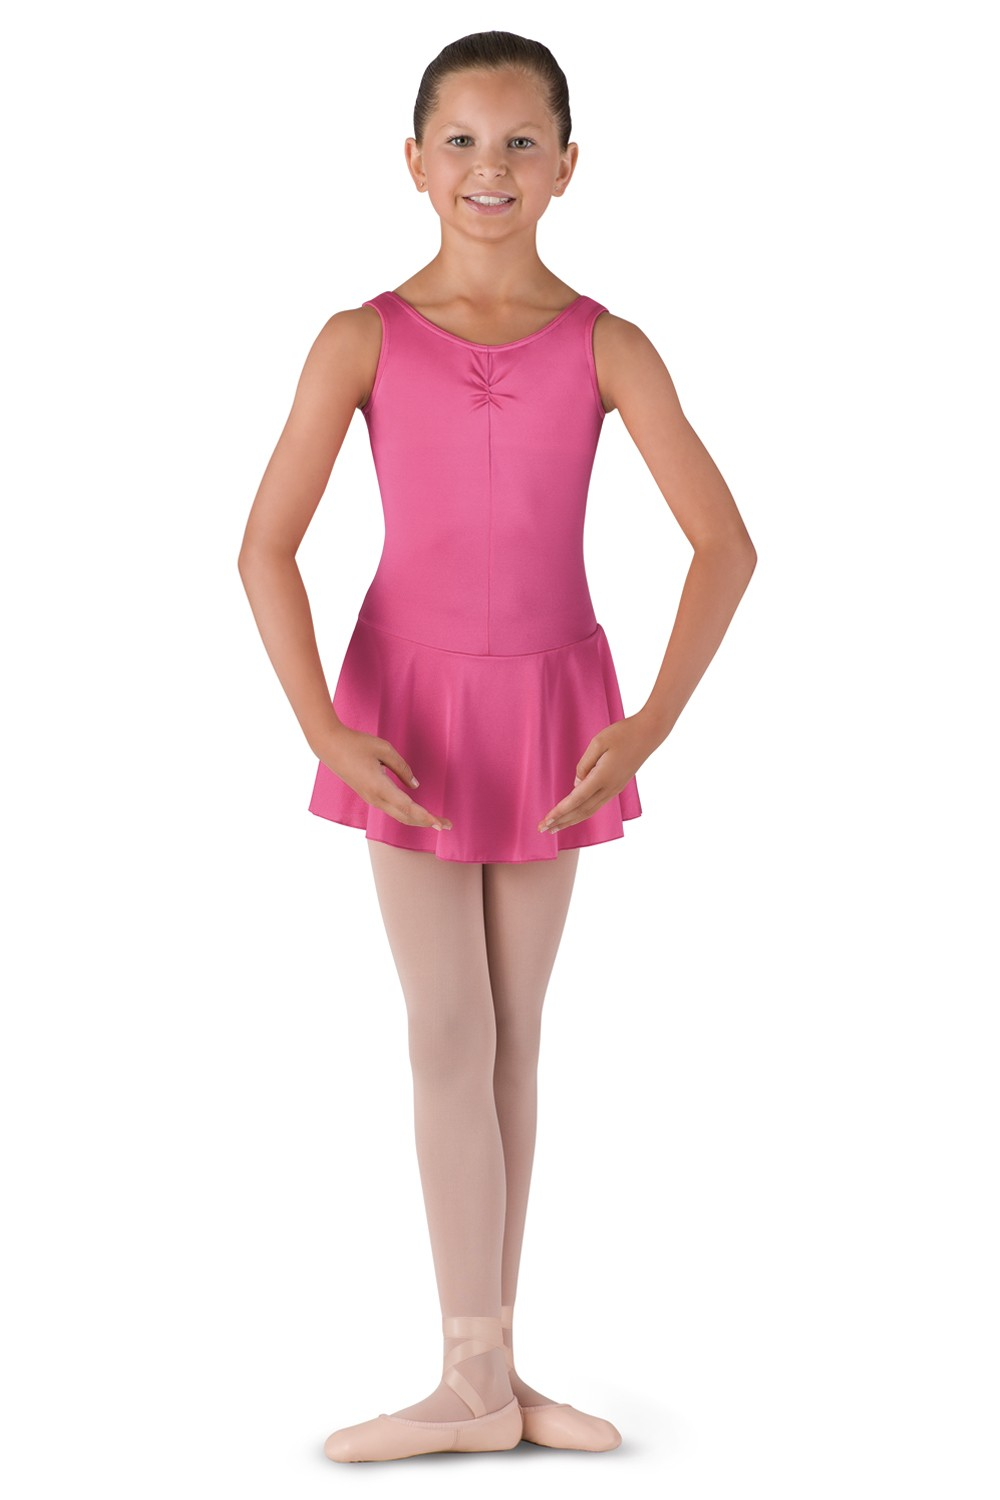 Skirted Tank Leotard Children's Dance Uniforms